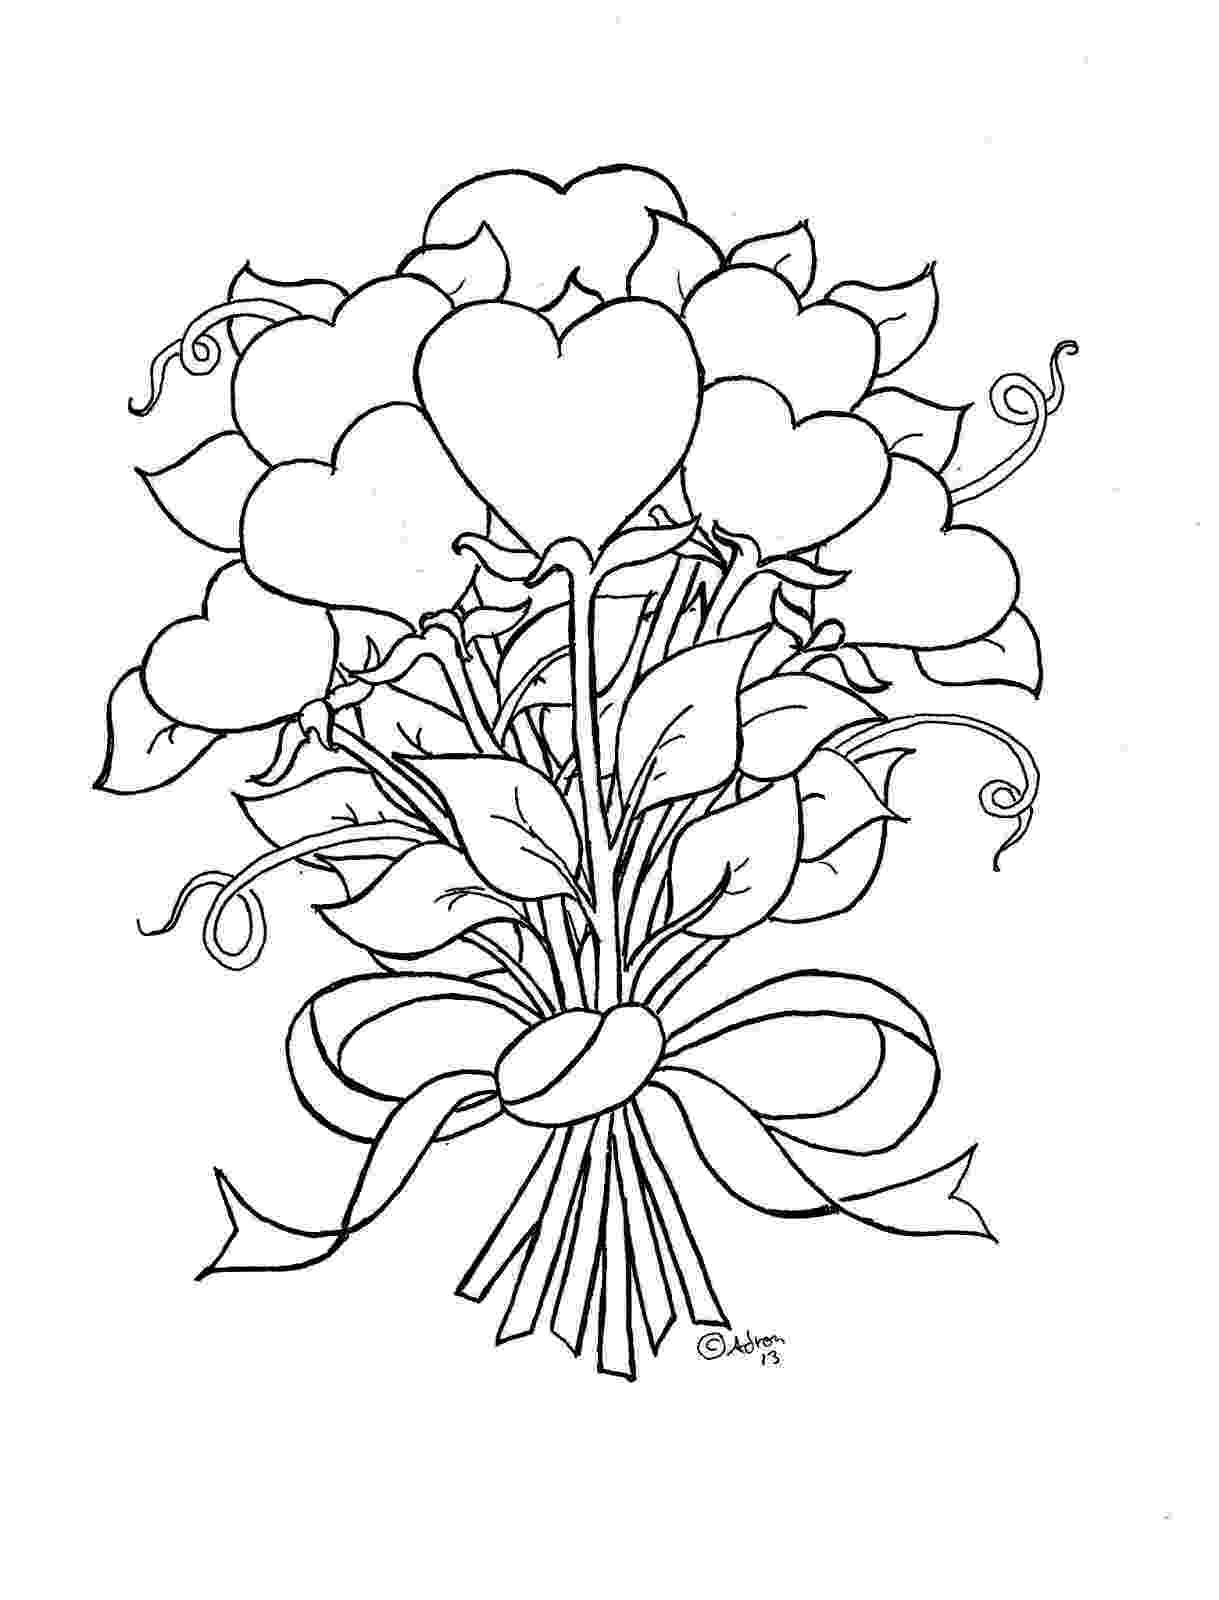 hearts and flowers coloring pages tin on pinterest coloring pages mexican folk art and tins hearts pages and coloring flowers